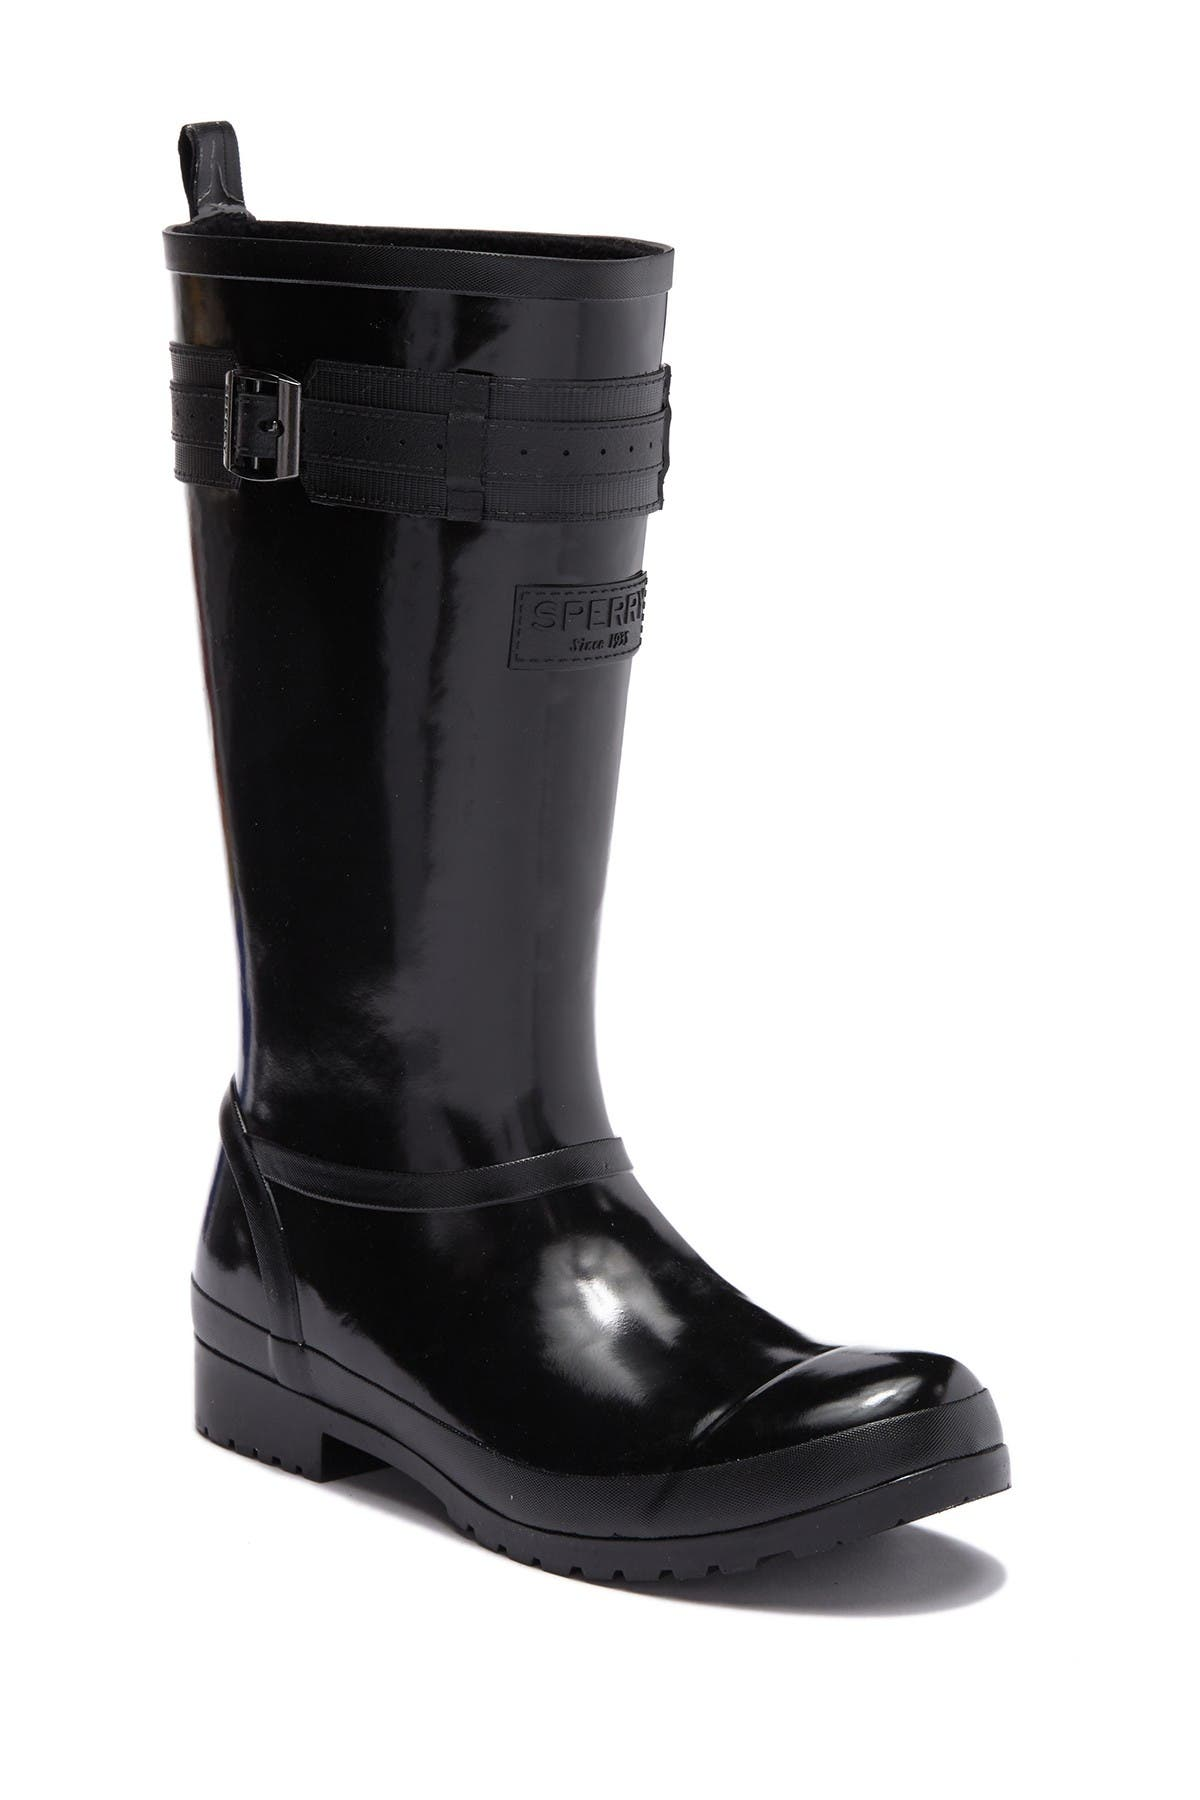 Image of Sperry Walker Atlantic Rain Boot